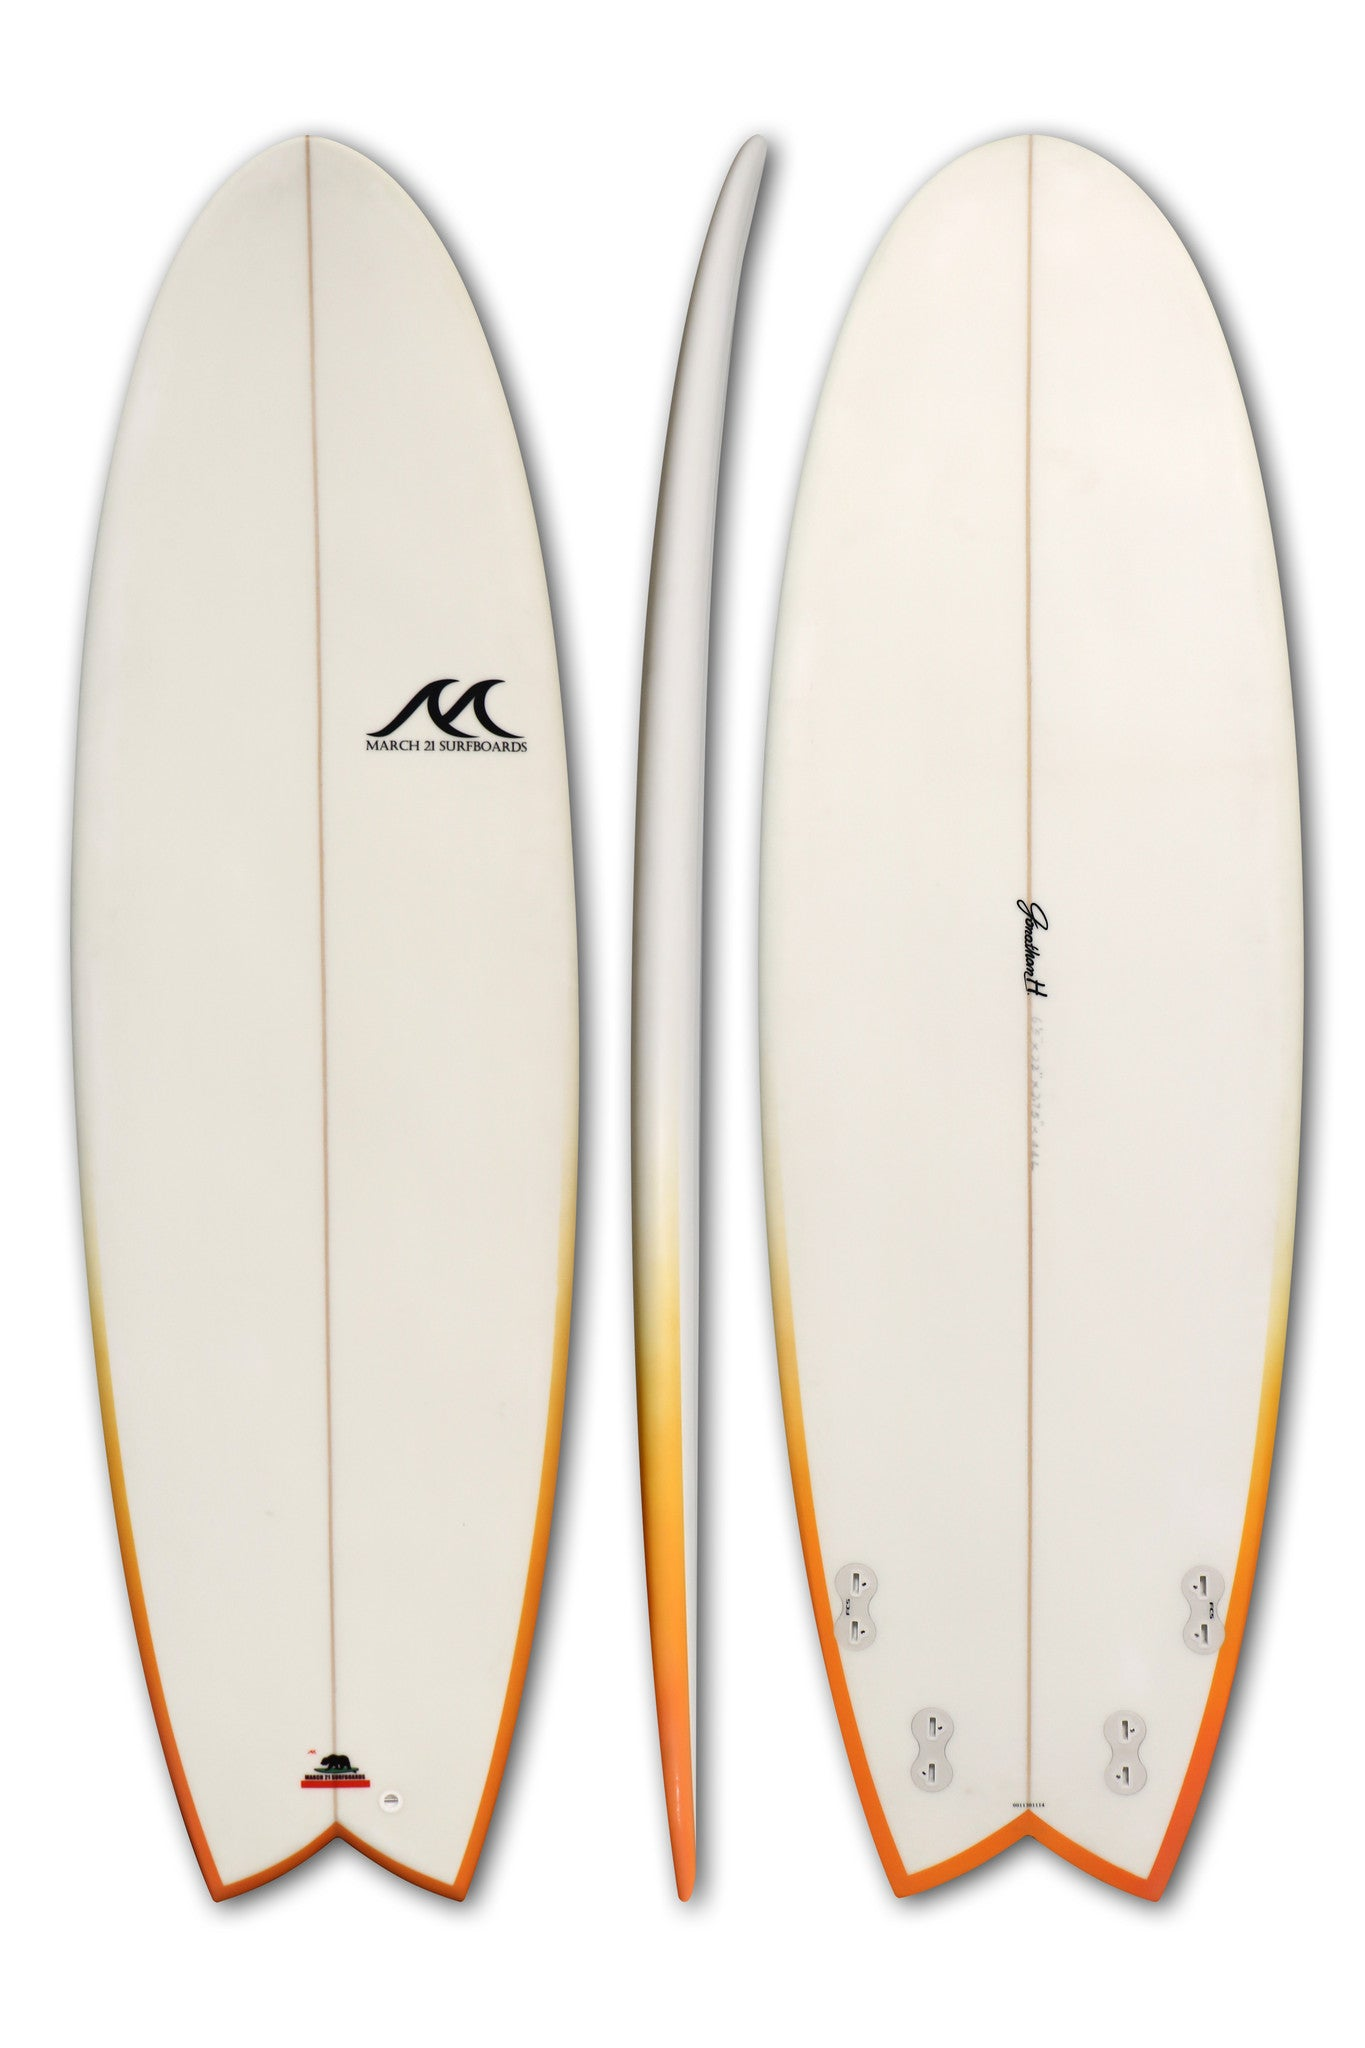 Jh simmy fish shortboard march 21 surfboards for Hybrid fish surfboard